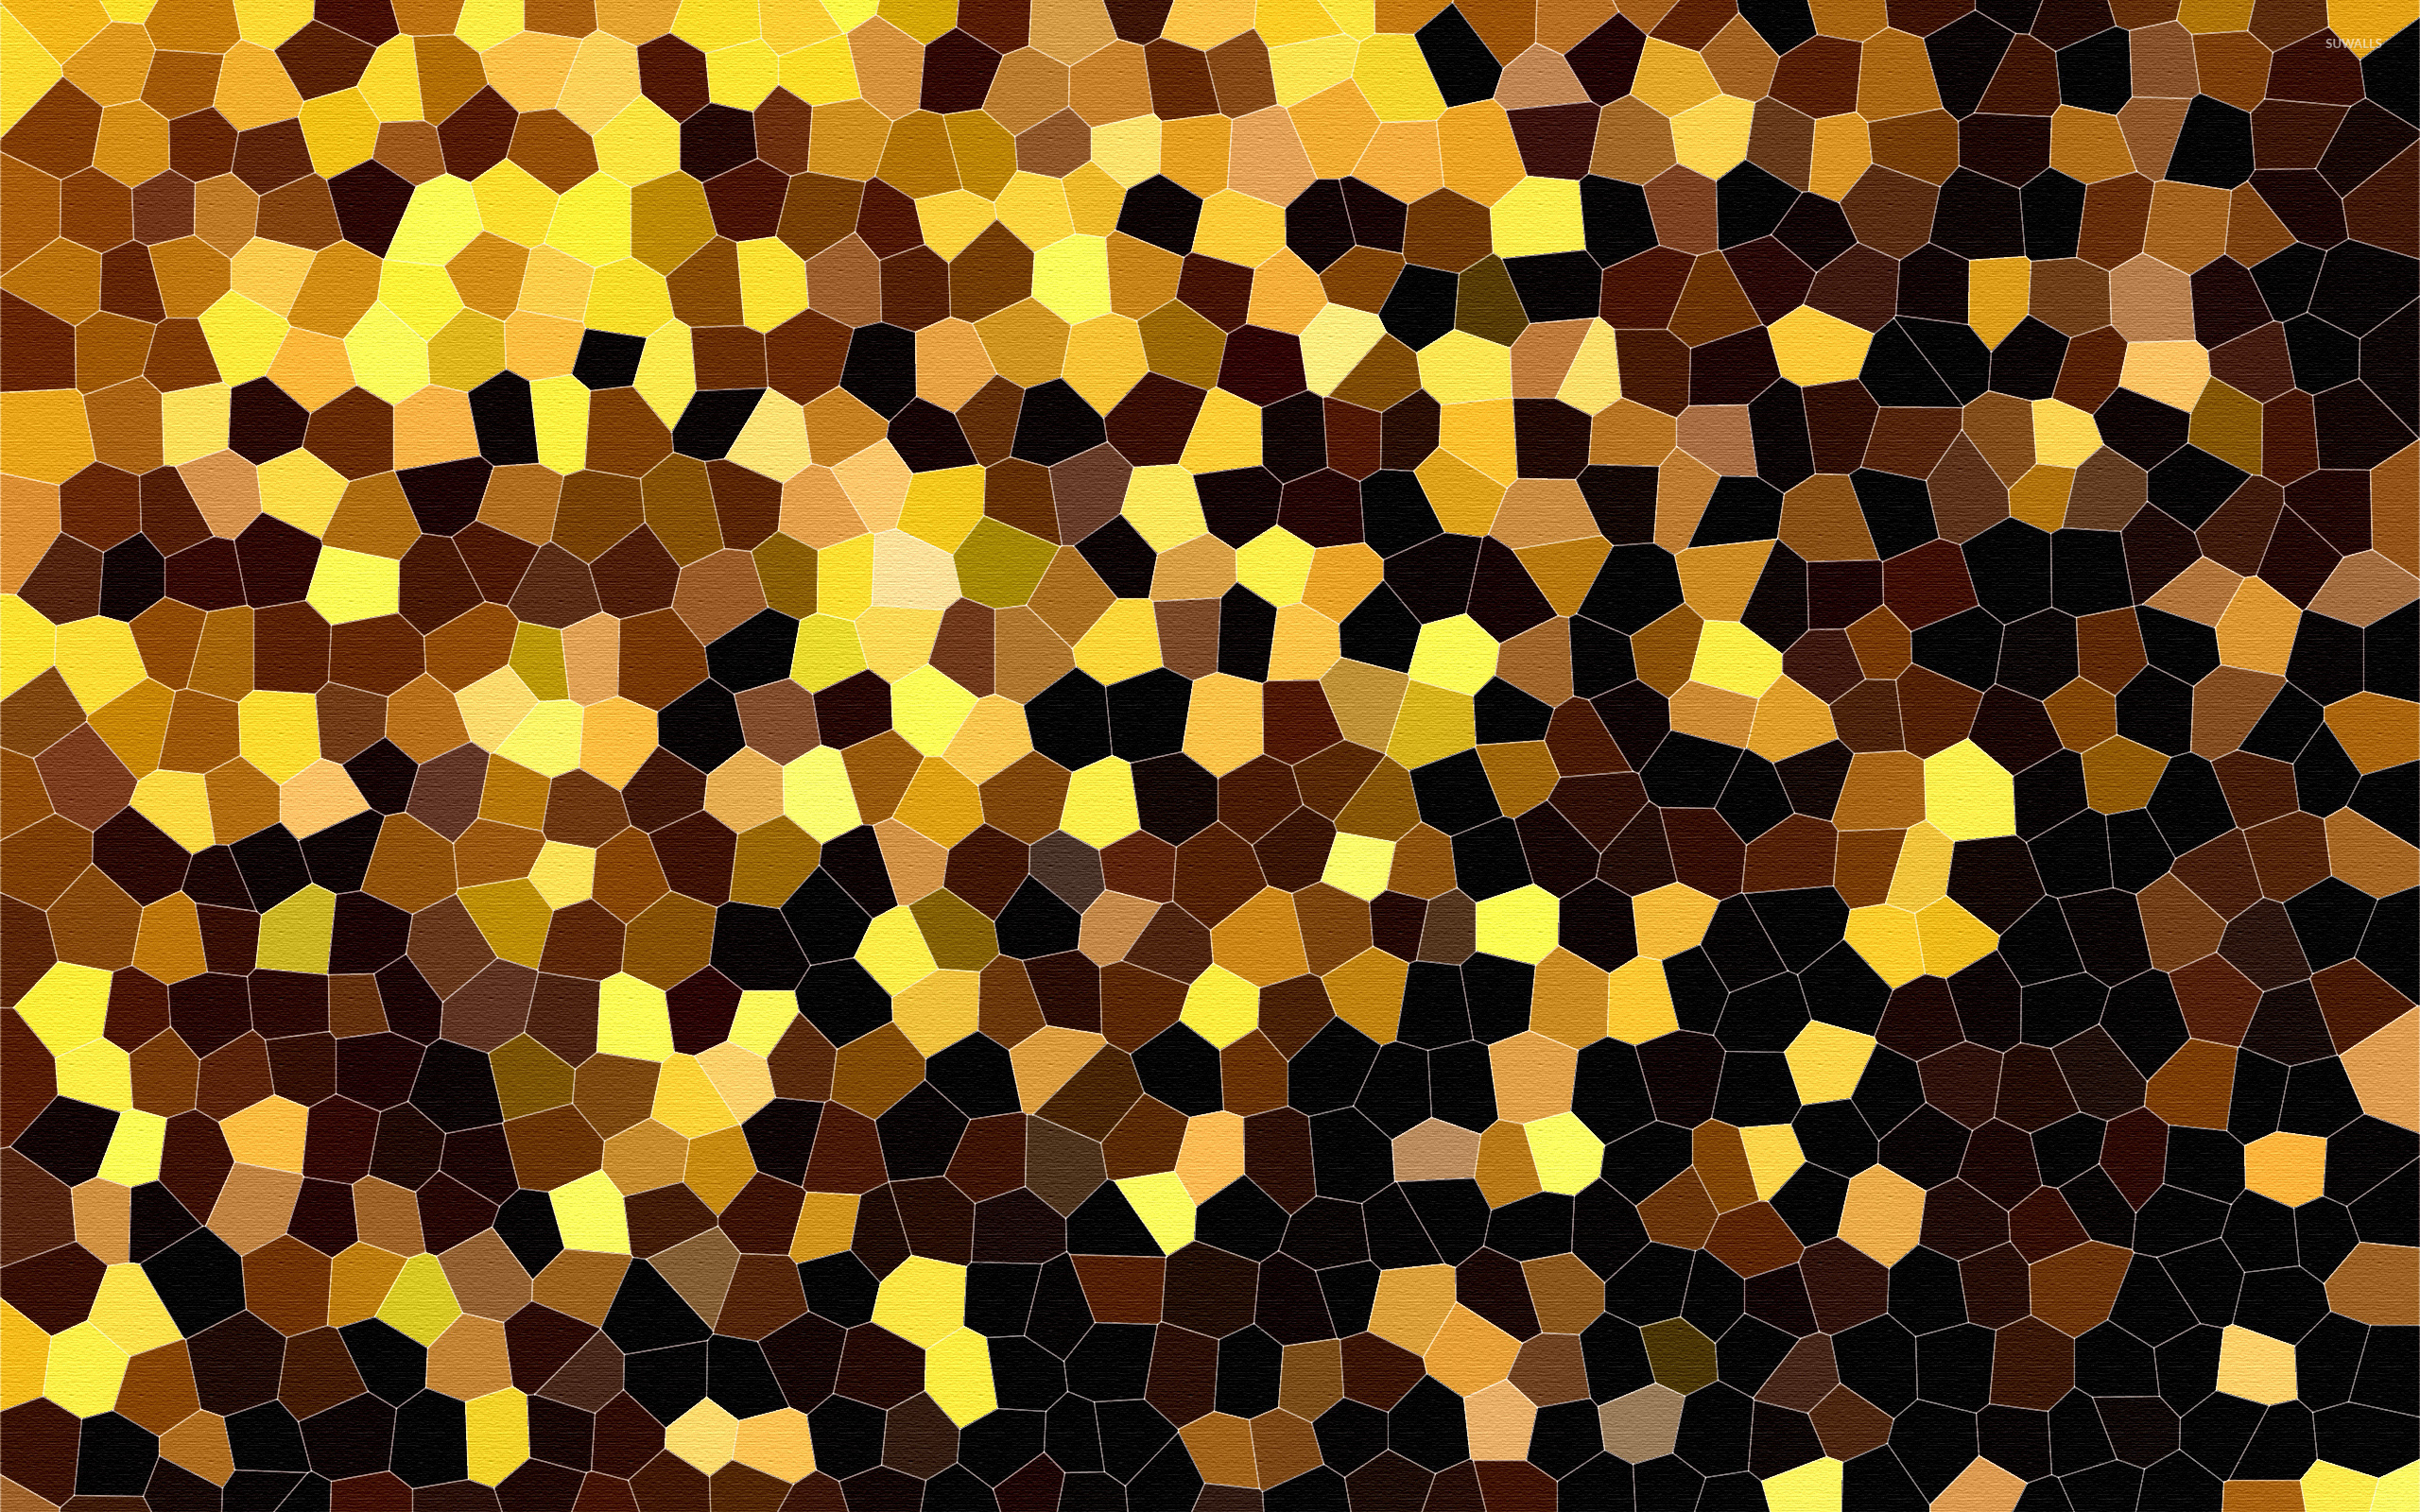 textured mosaic wallpaper abstract wallpapers 45976